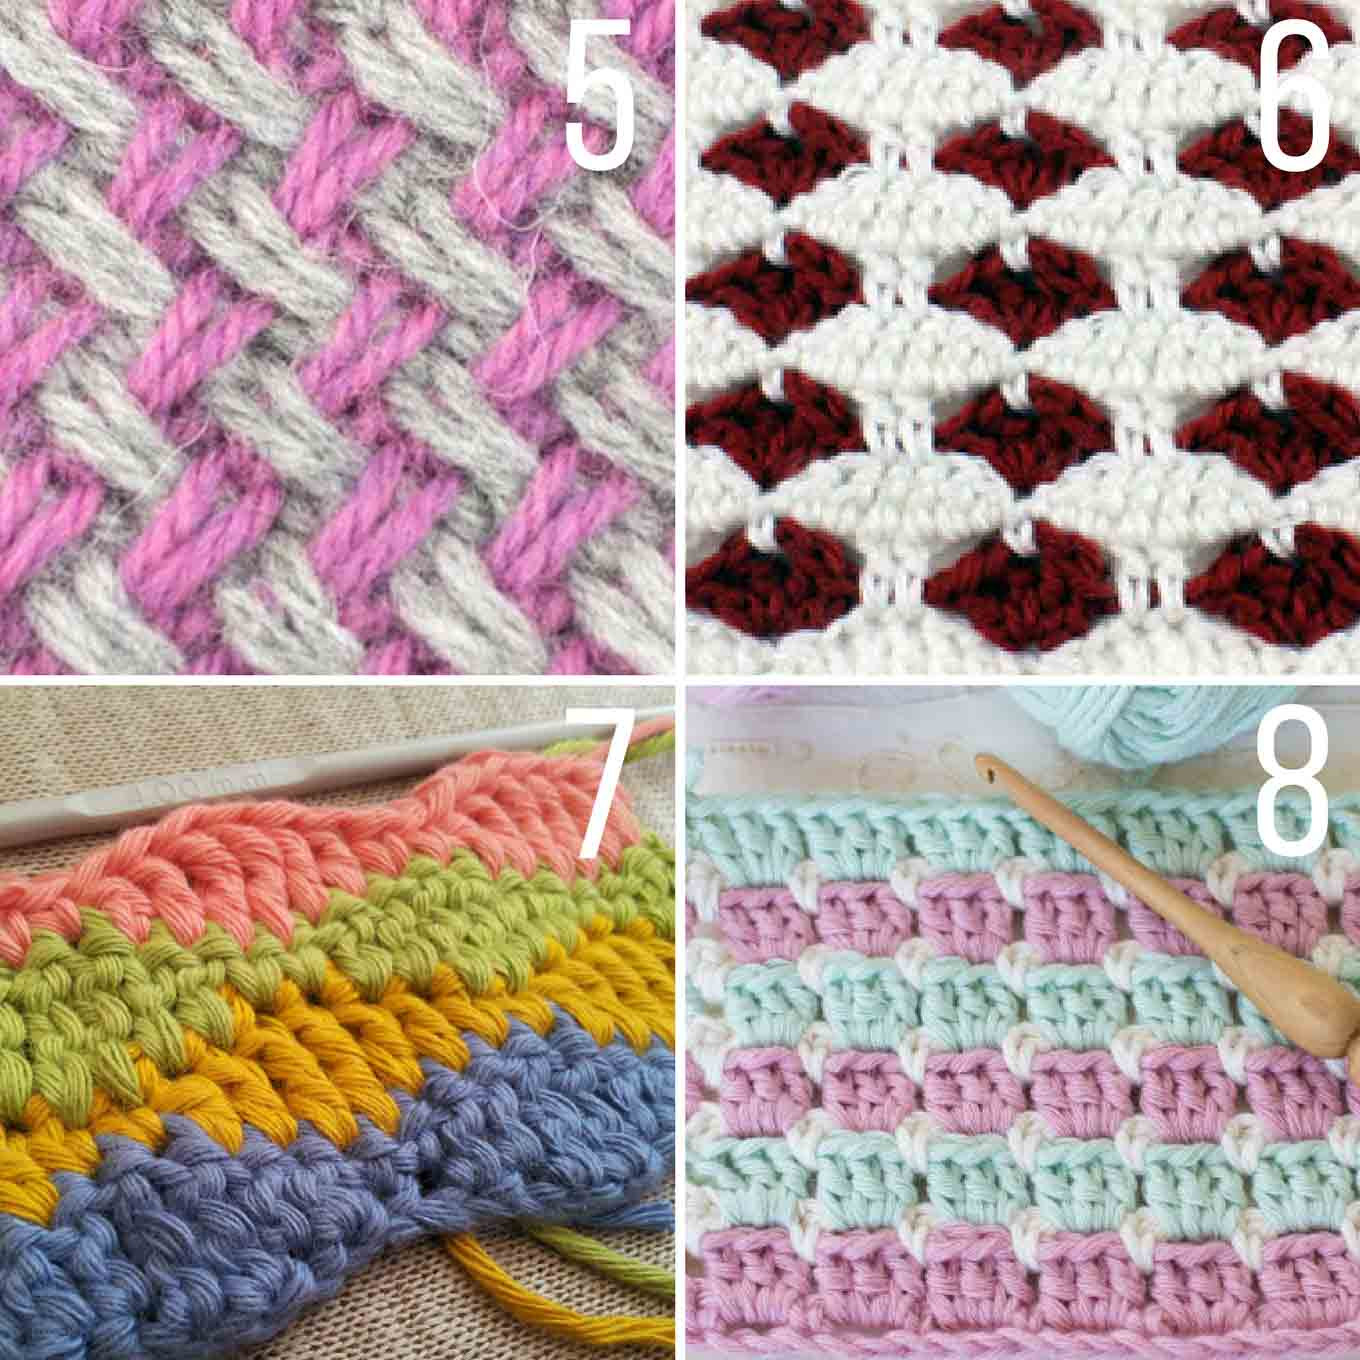 Inspirational 20 Multi Color Crochet Stitch Tutorials Make & Do Crew Crochet Stitches with Pictures Of Marvelous 46 Photos Crochet Stitches with Pictures